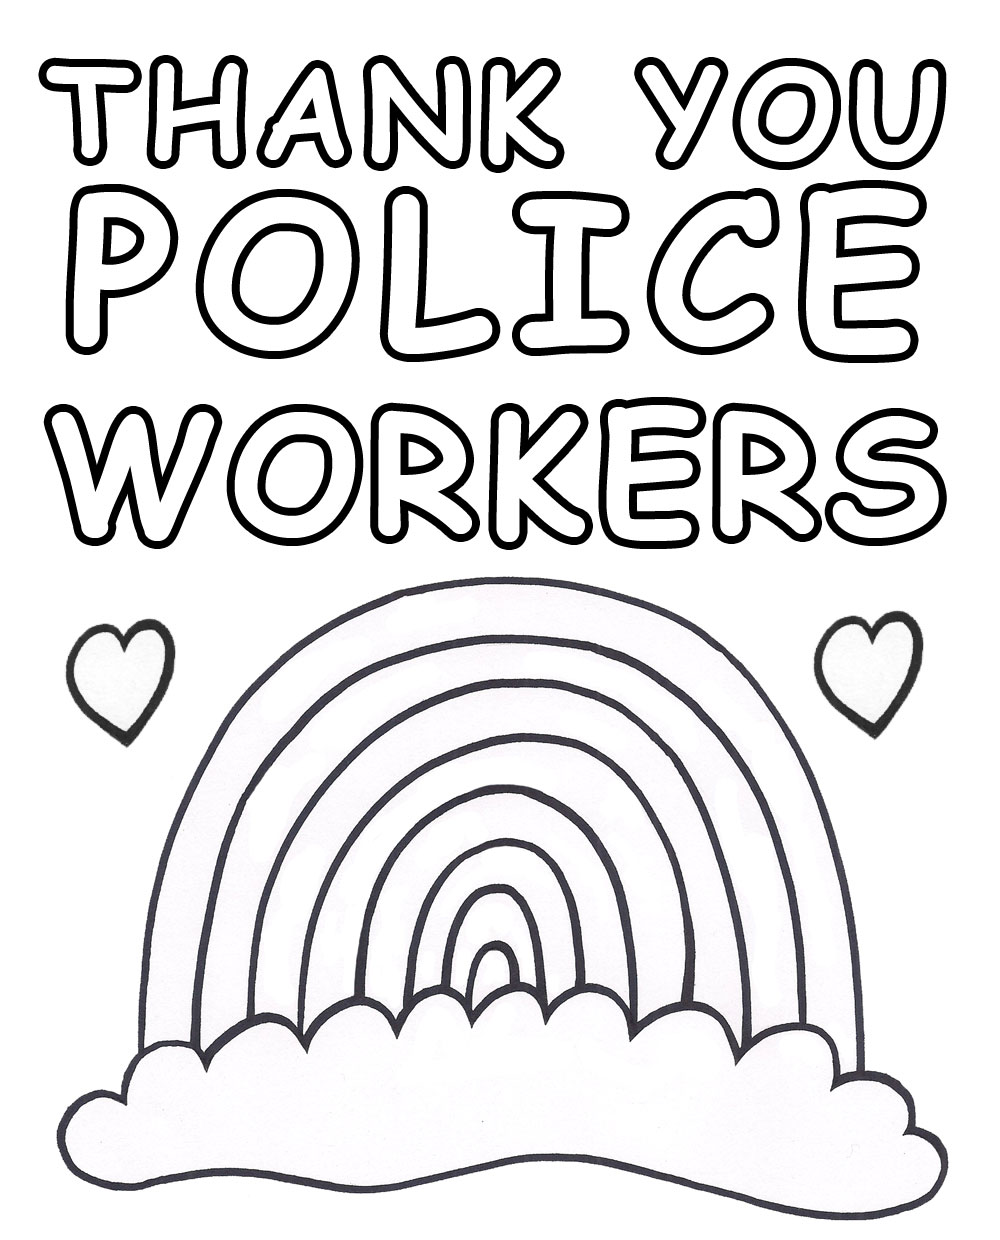 A printable poster for kids to colour in to say thank you to those who work for the police